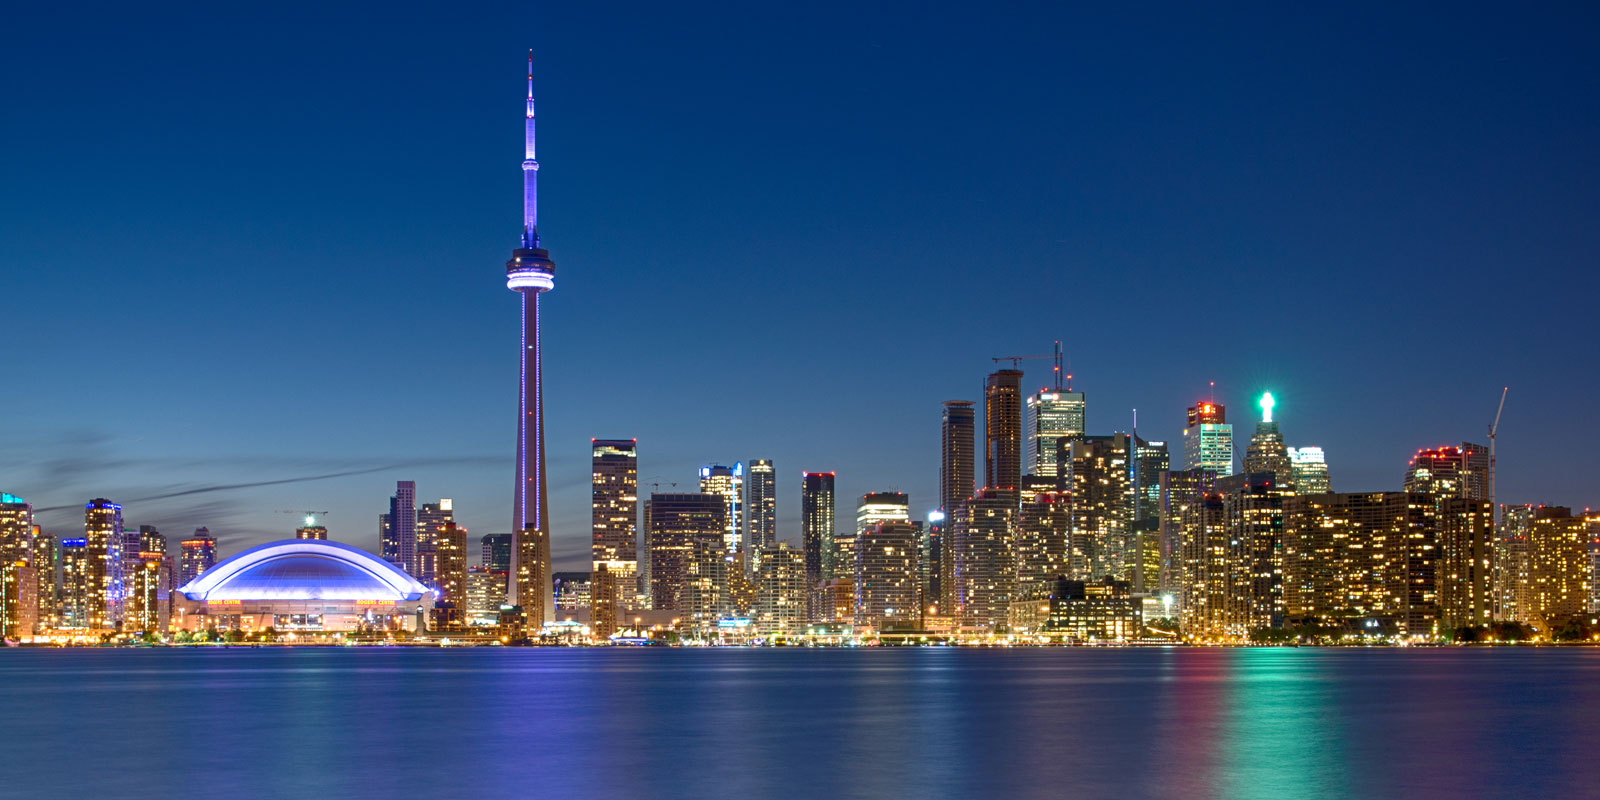 The distinct city line of Toronto at night cityscape landscape photography